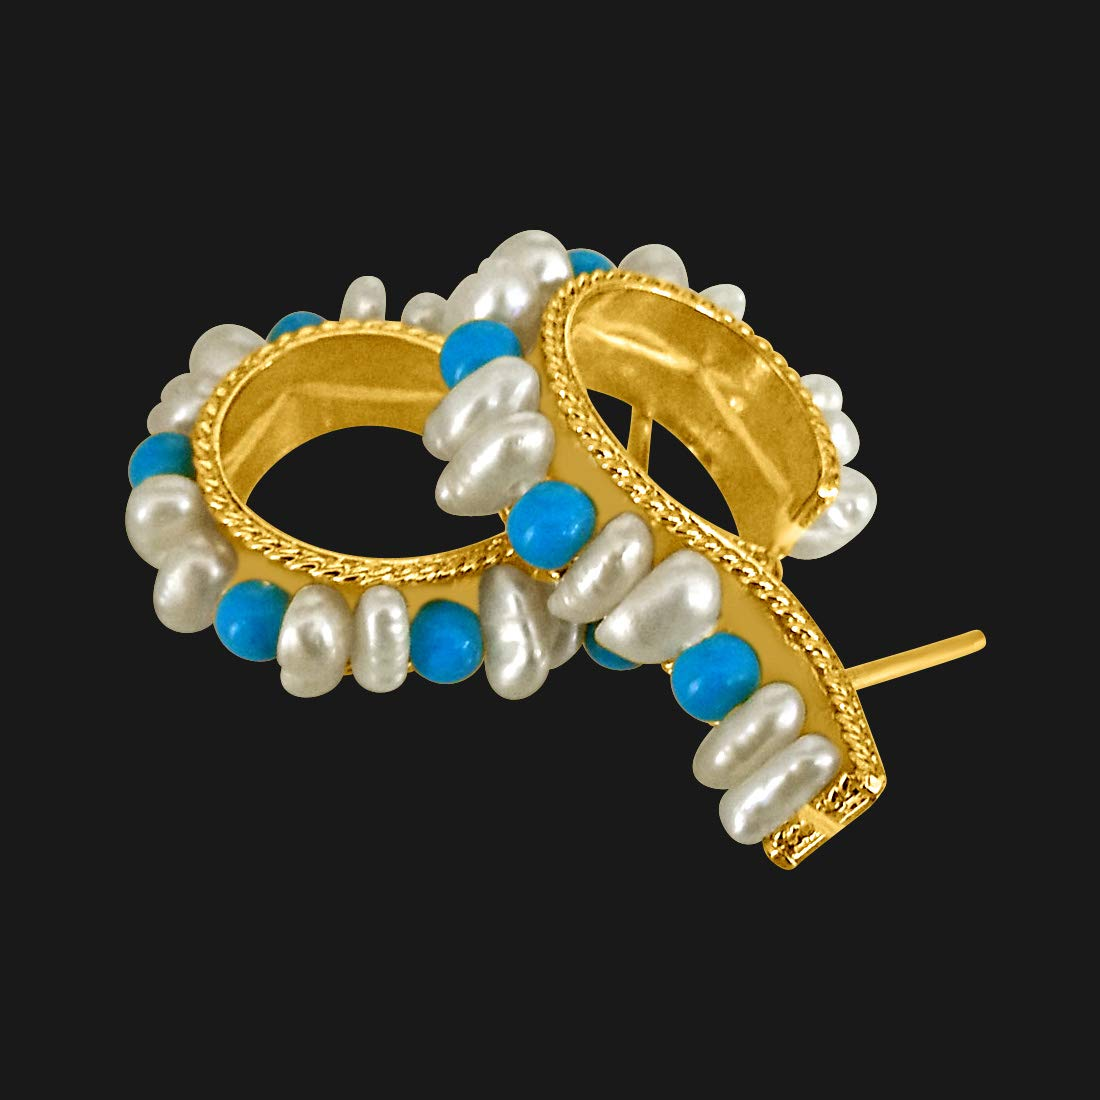 Real Pearl & Turquoise Bali Style Earrings for Women (SE198)